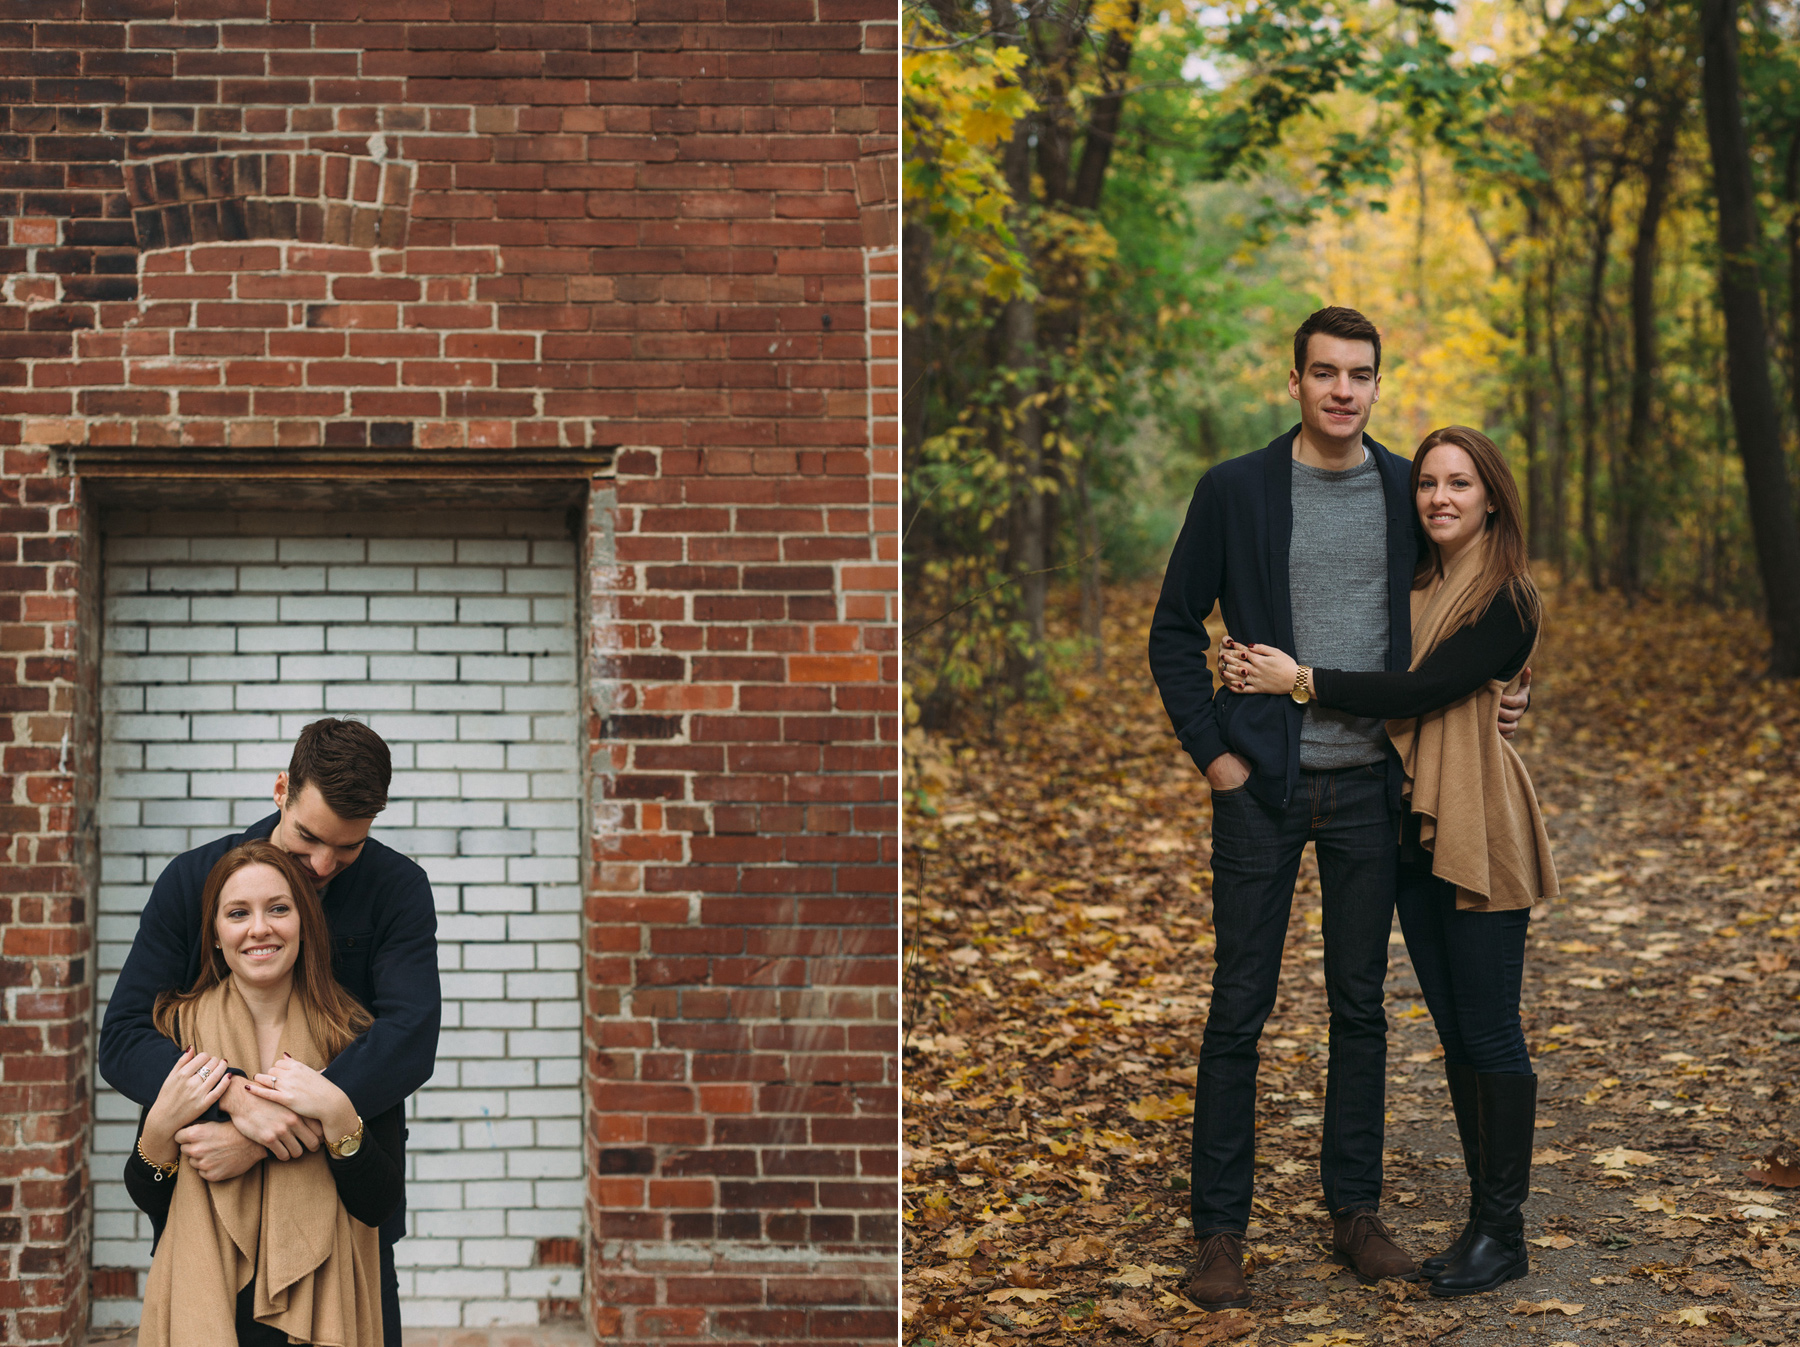 Evergreen-Brick-works-Toronto-engagement-photos-by-Sam-Wong-of_Artanis-Collective-Brooke-&-Adam_04.jpg